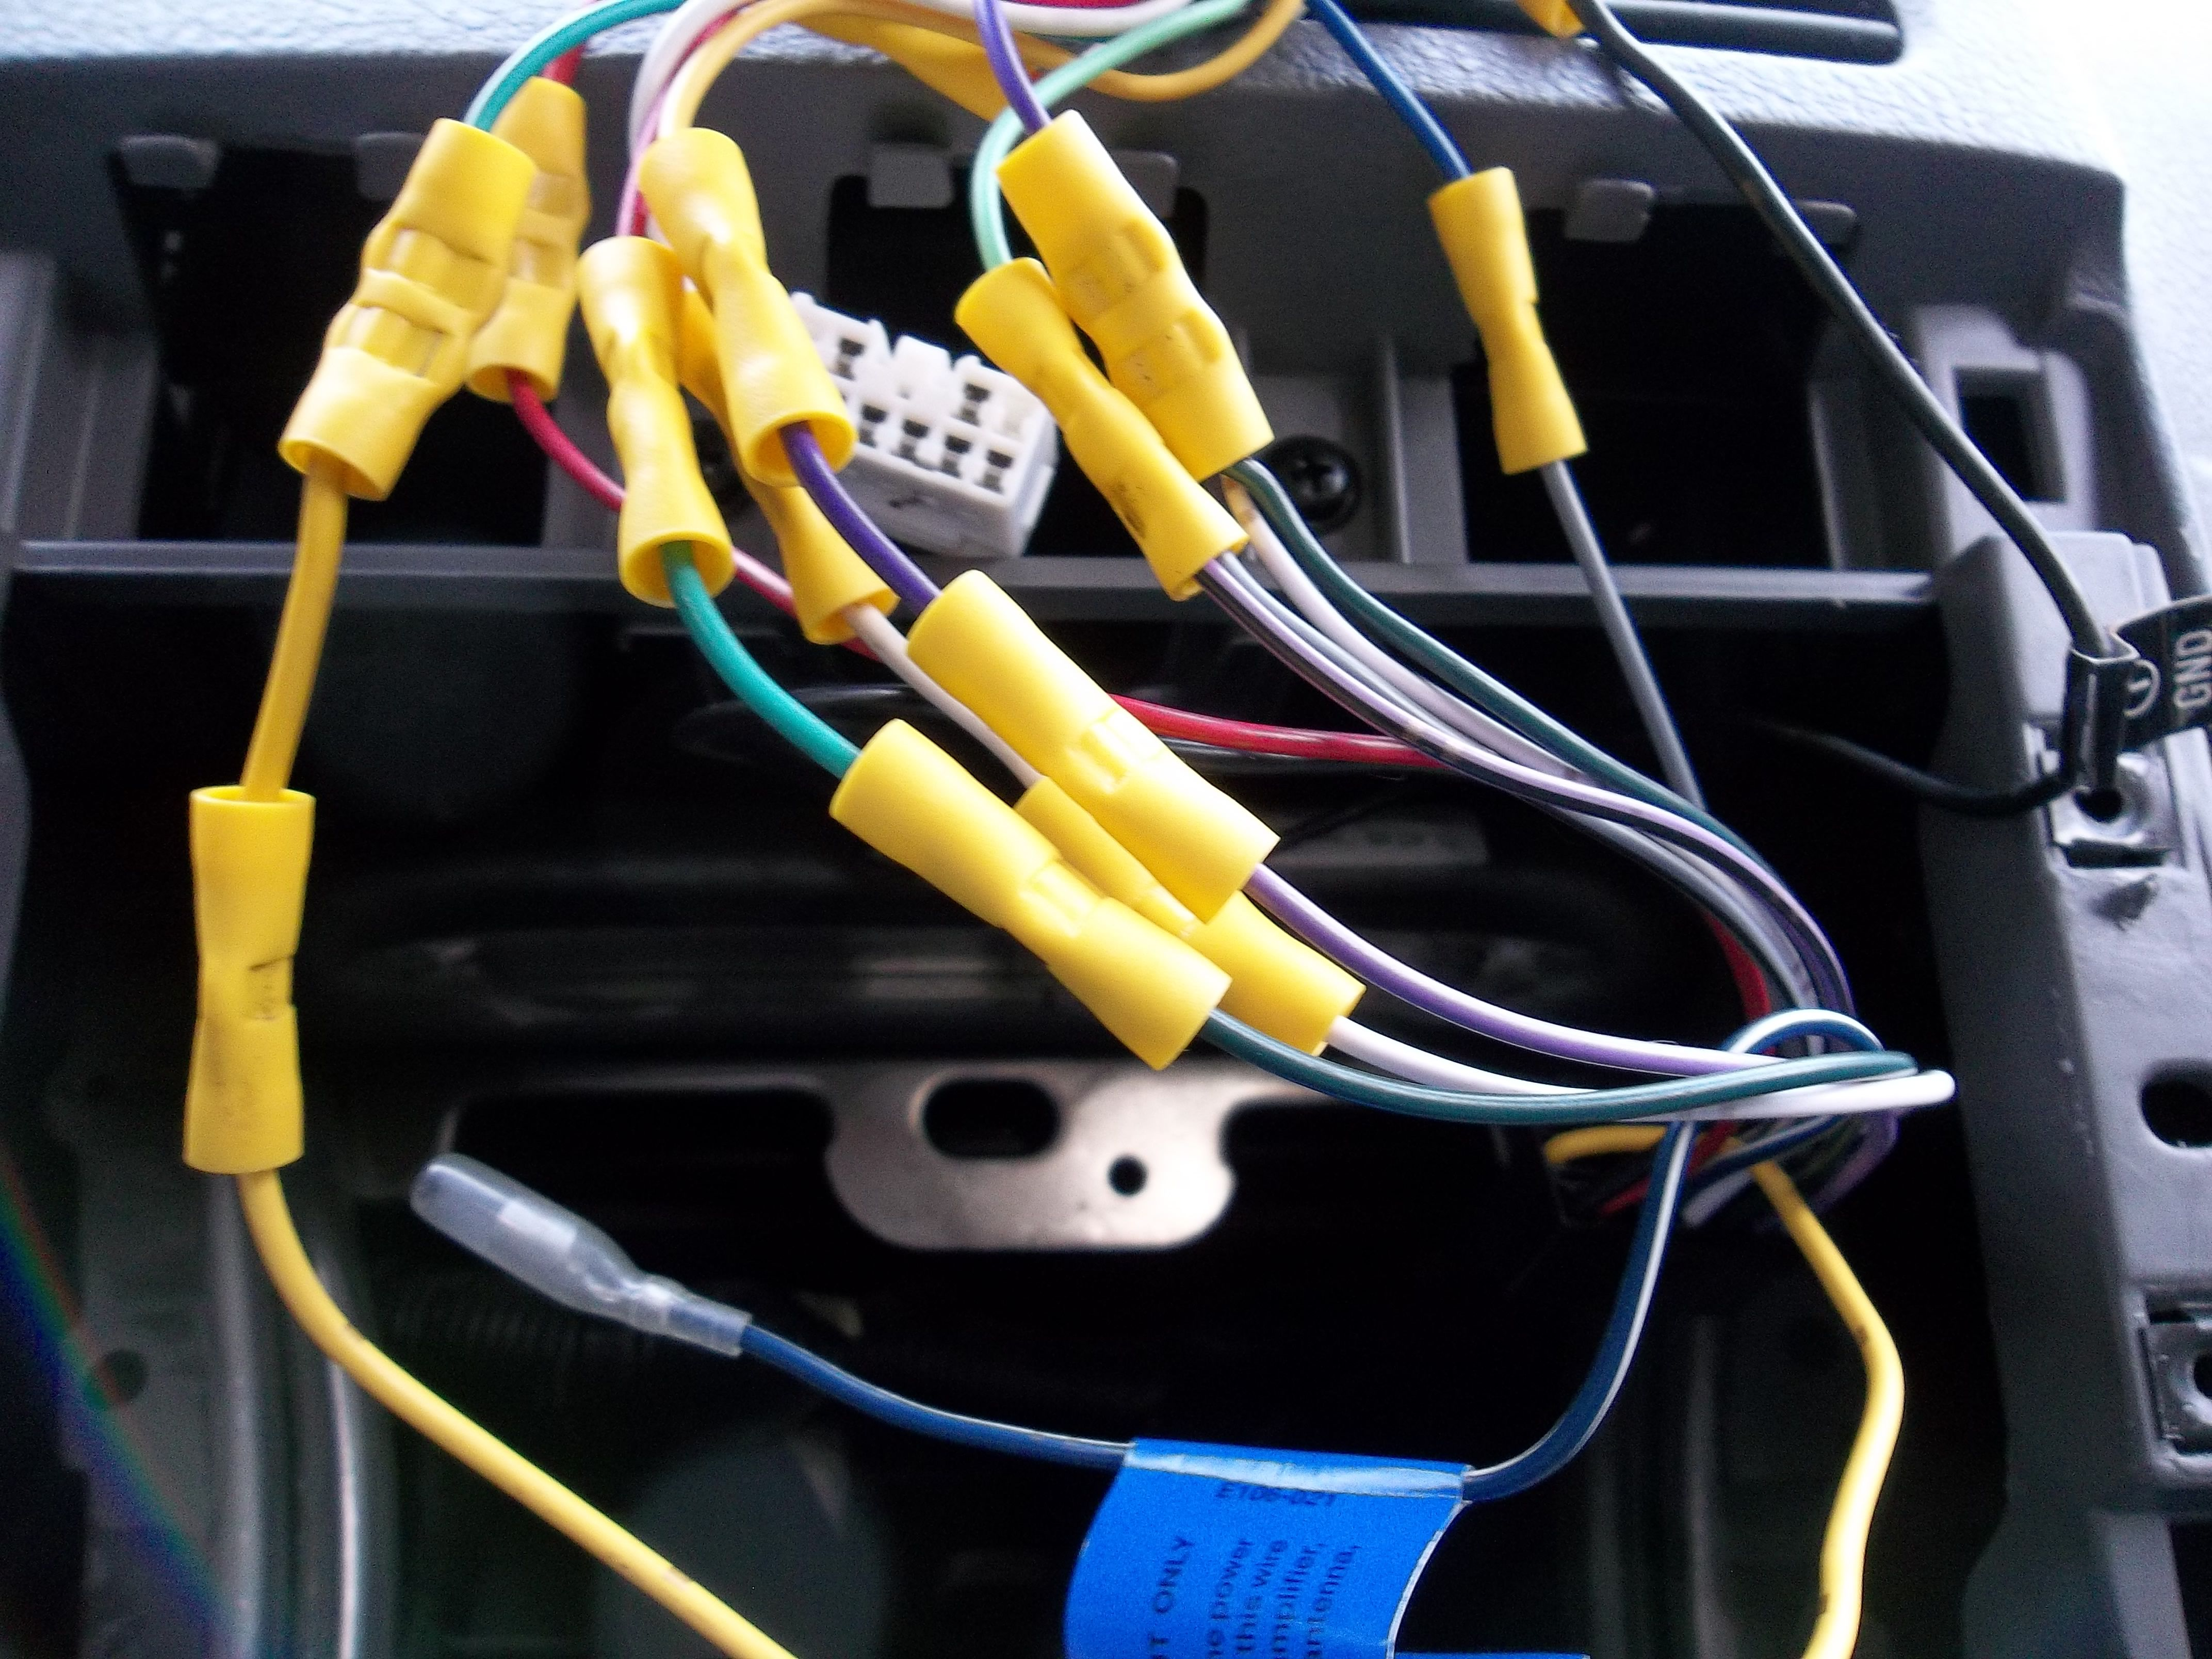 2003 Honda Civic Cd Player Wiring Diagram What You Need To Know About Car Amp Wiring